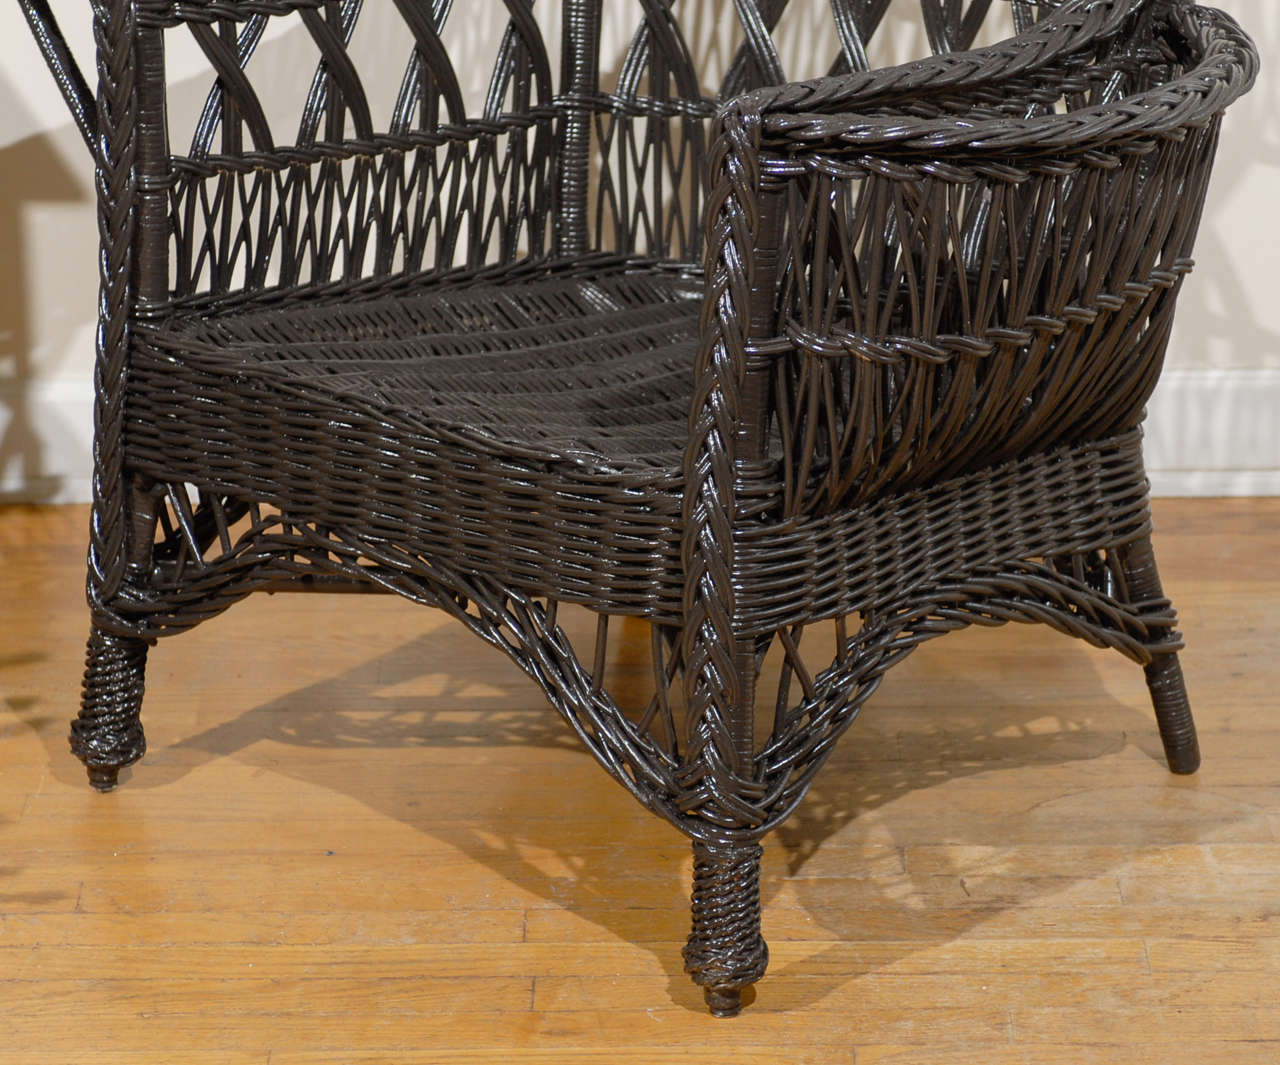 Antique American Wicker Wing Chair with Magazine Pocket 4